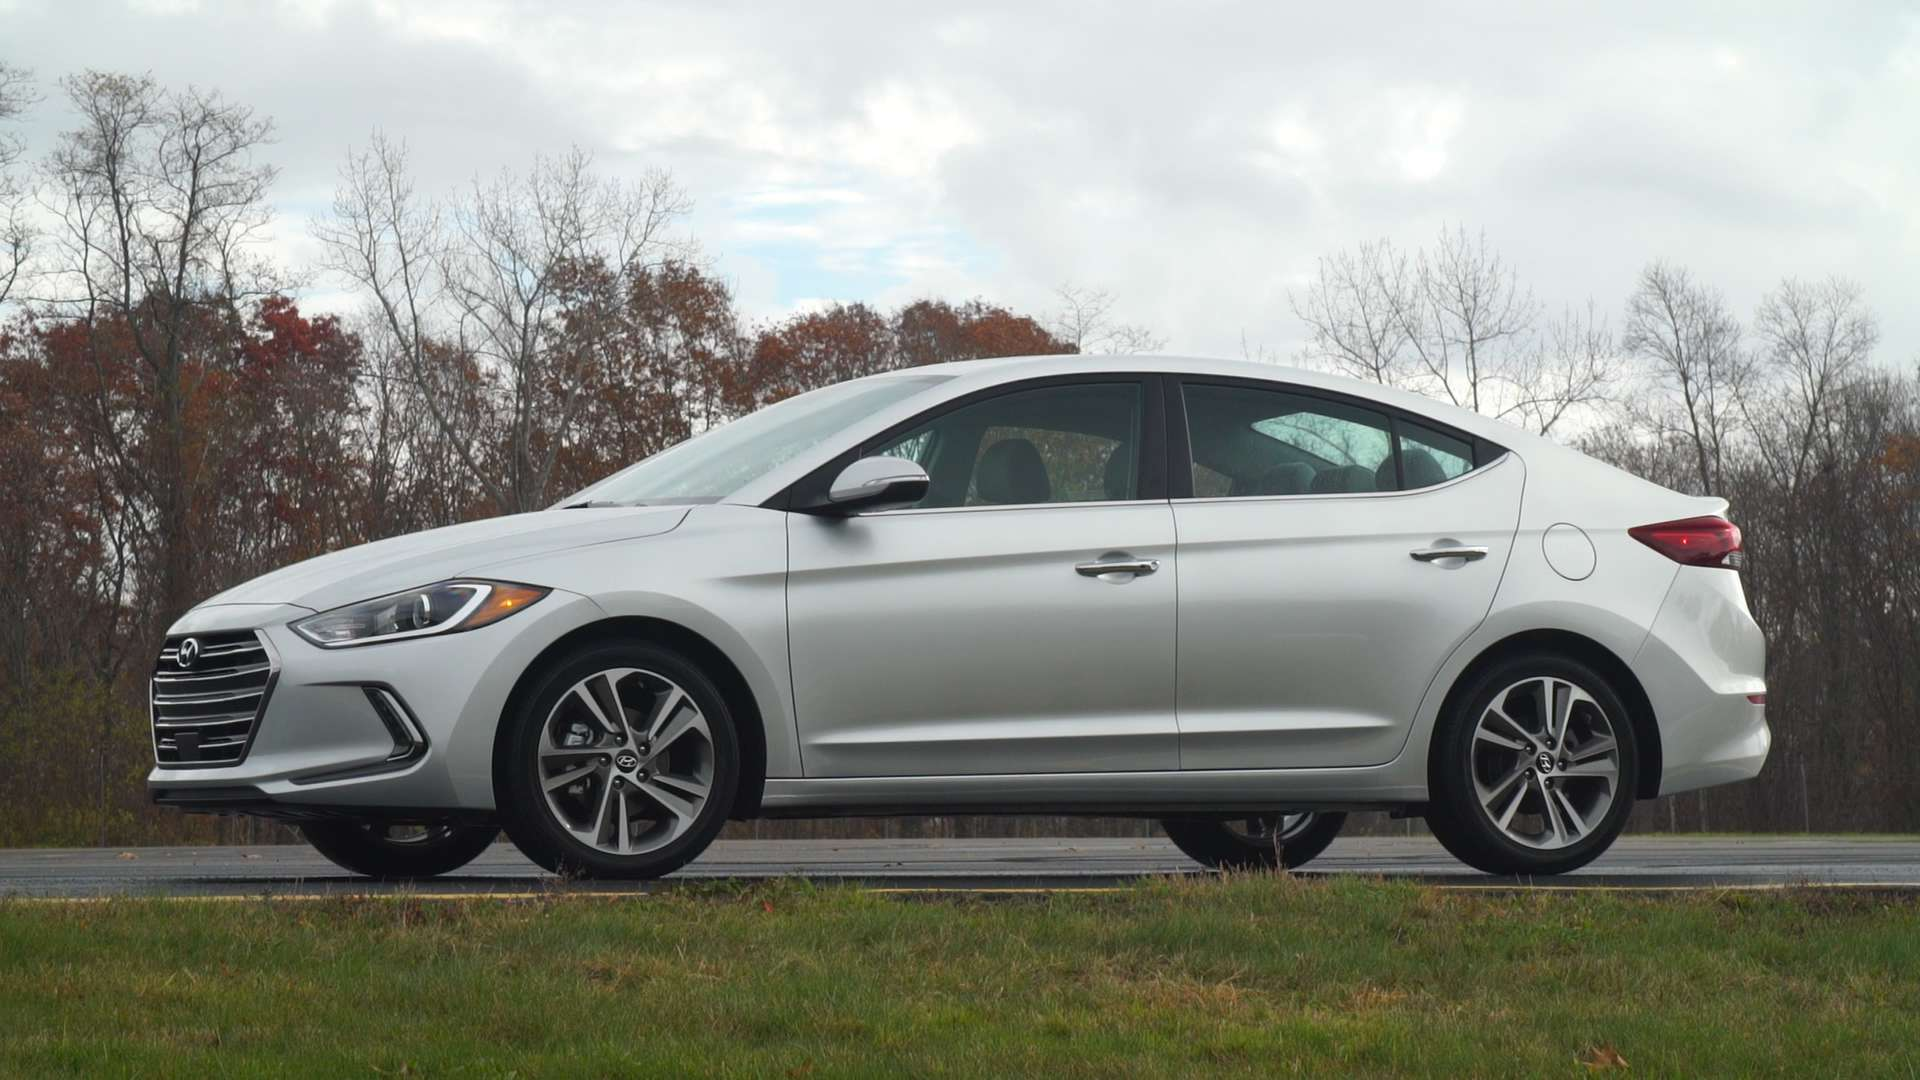 2017 hyundai elantra reviews ratings prices consumer reports